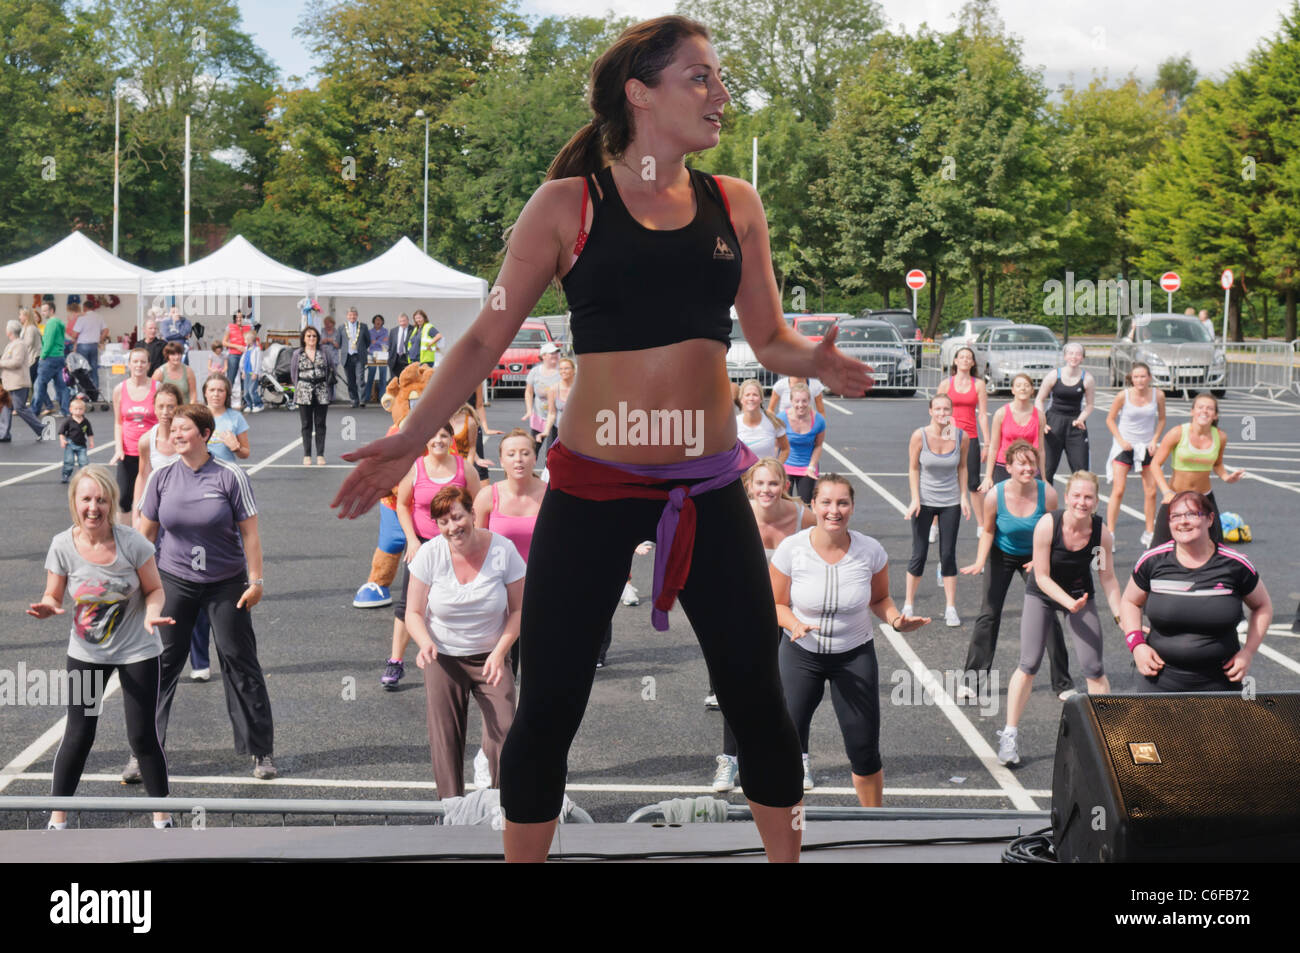 Large number of ladies take part in an outdoor Zumba class - Stock Image